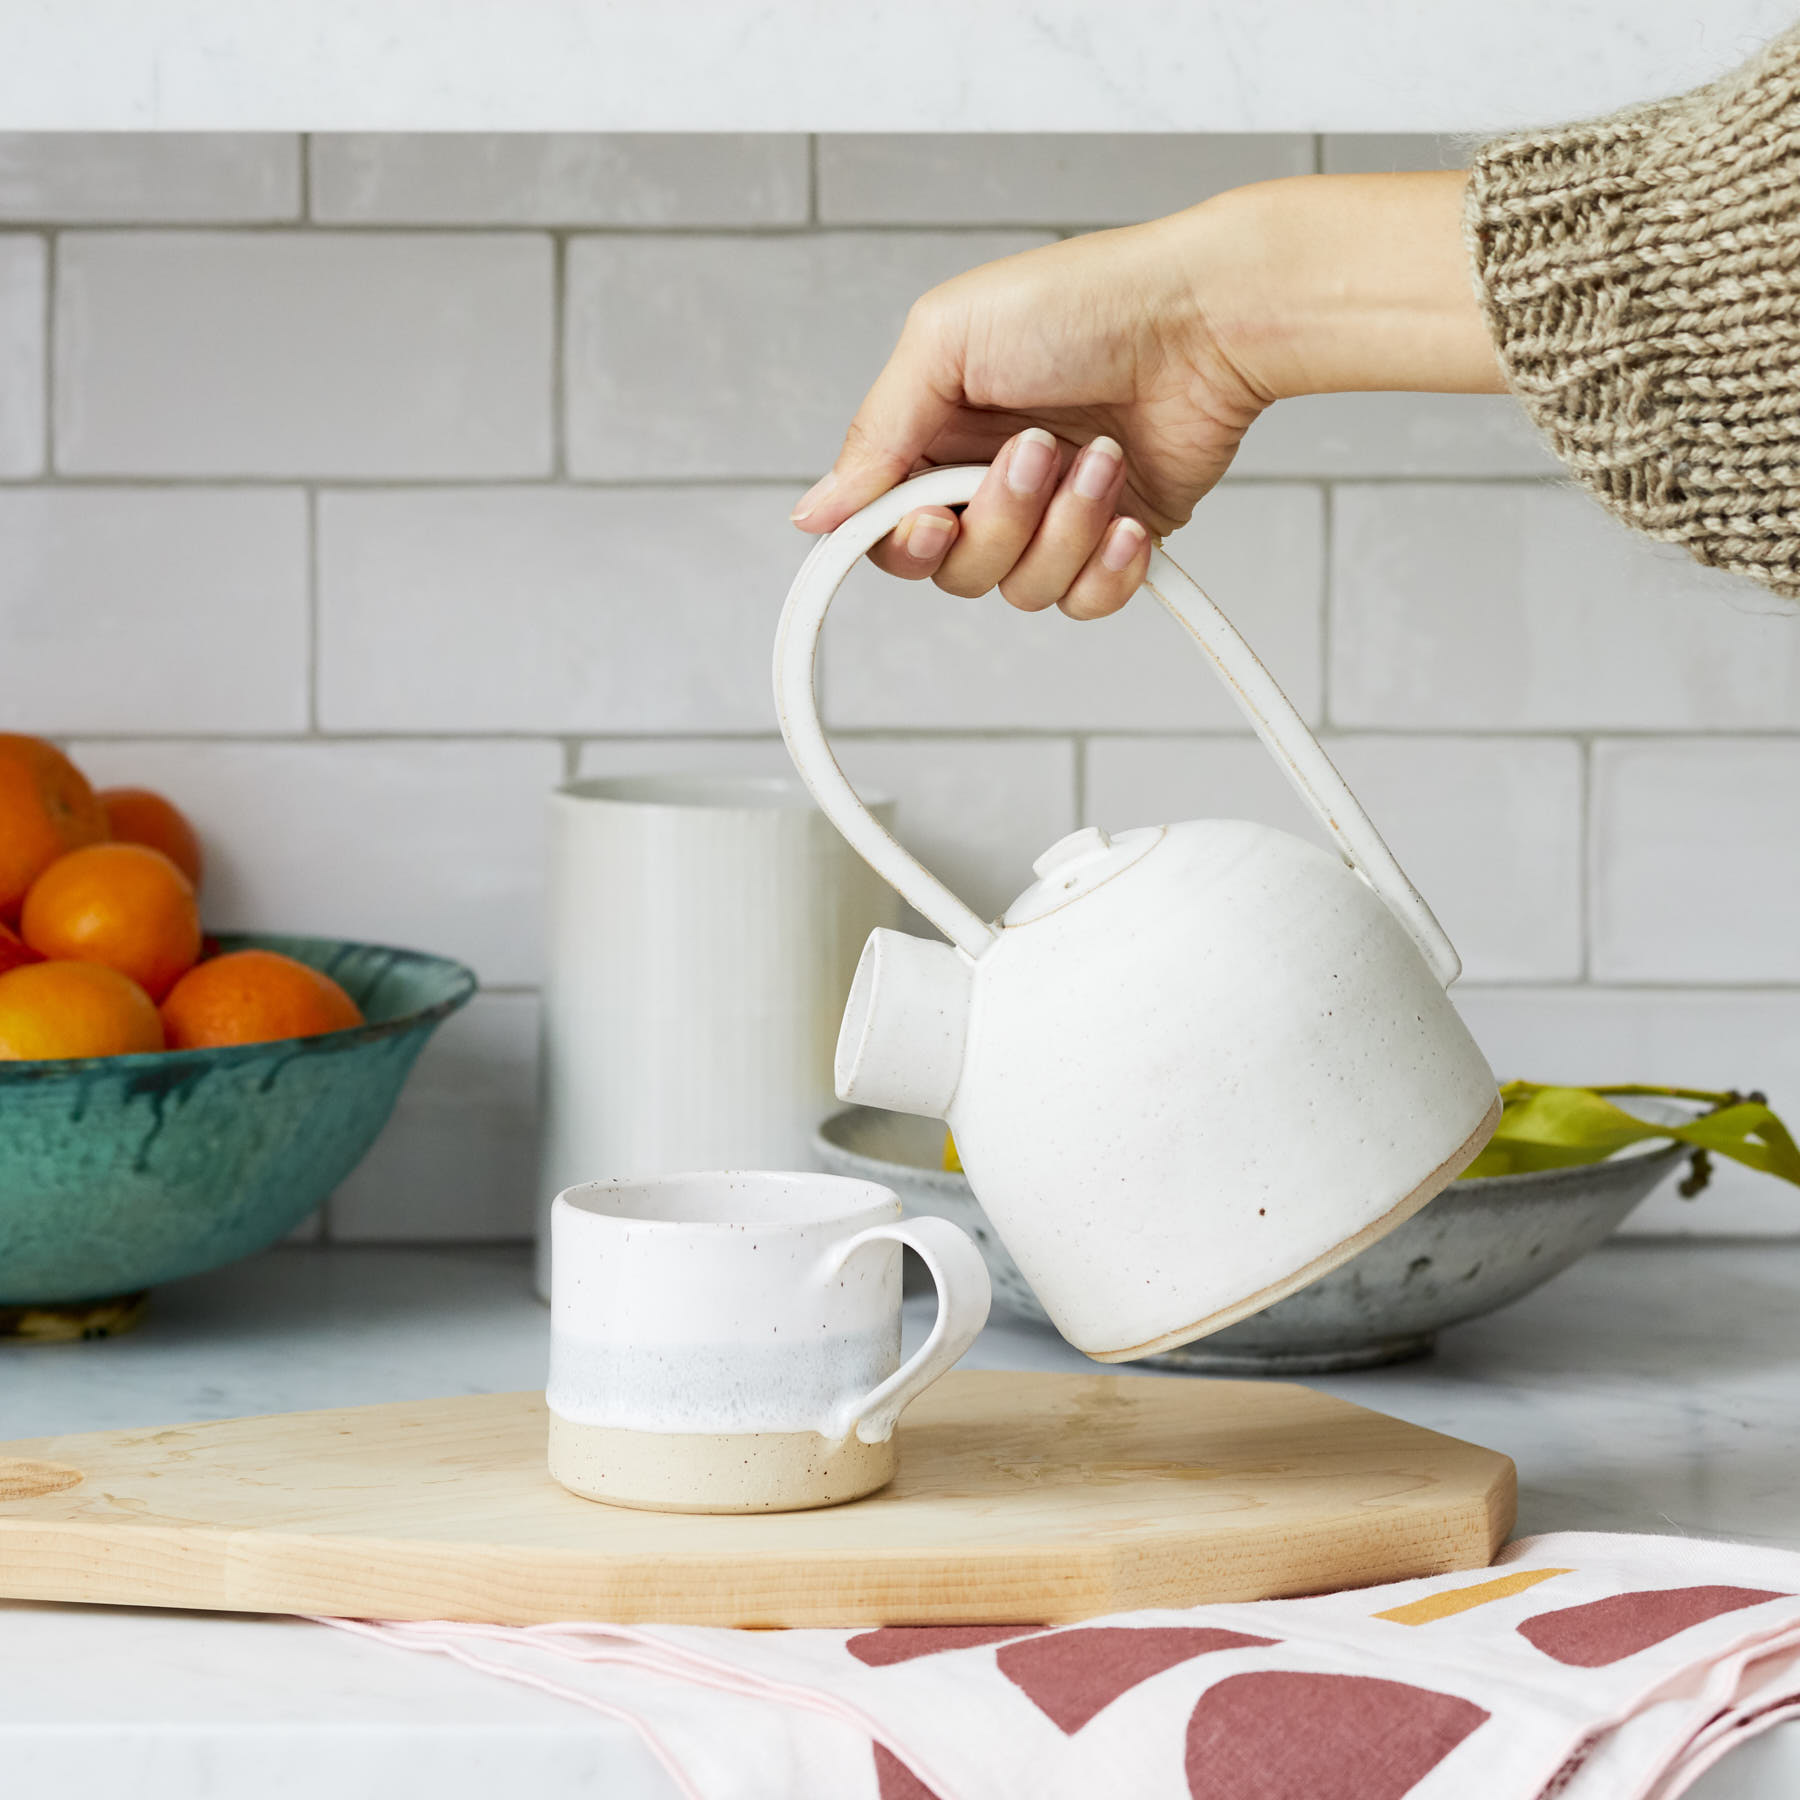 2225-Kitchen-kettle-hand-Etsy-fall_466